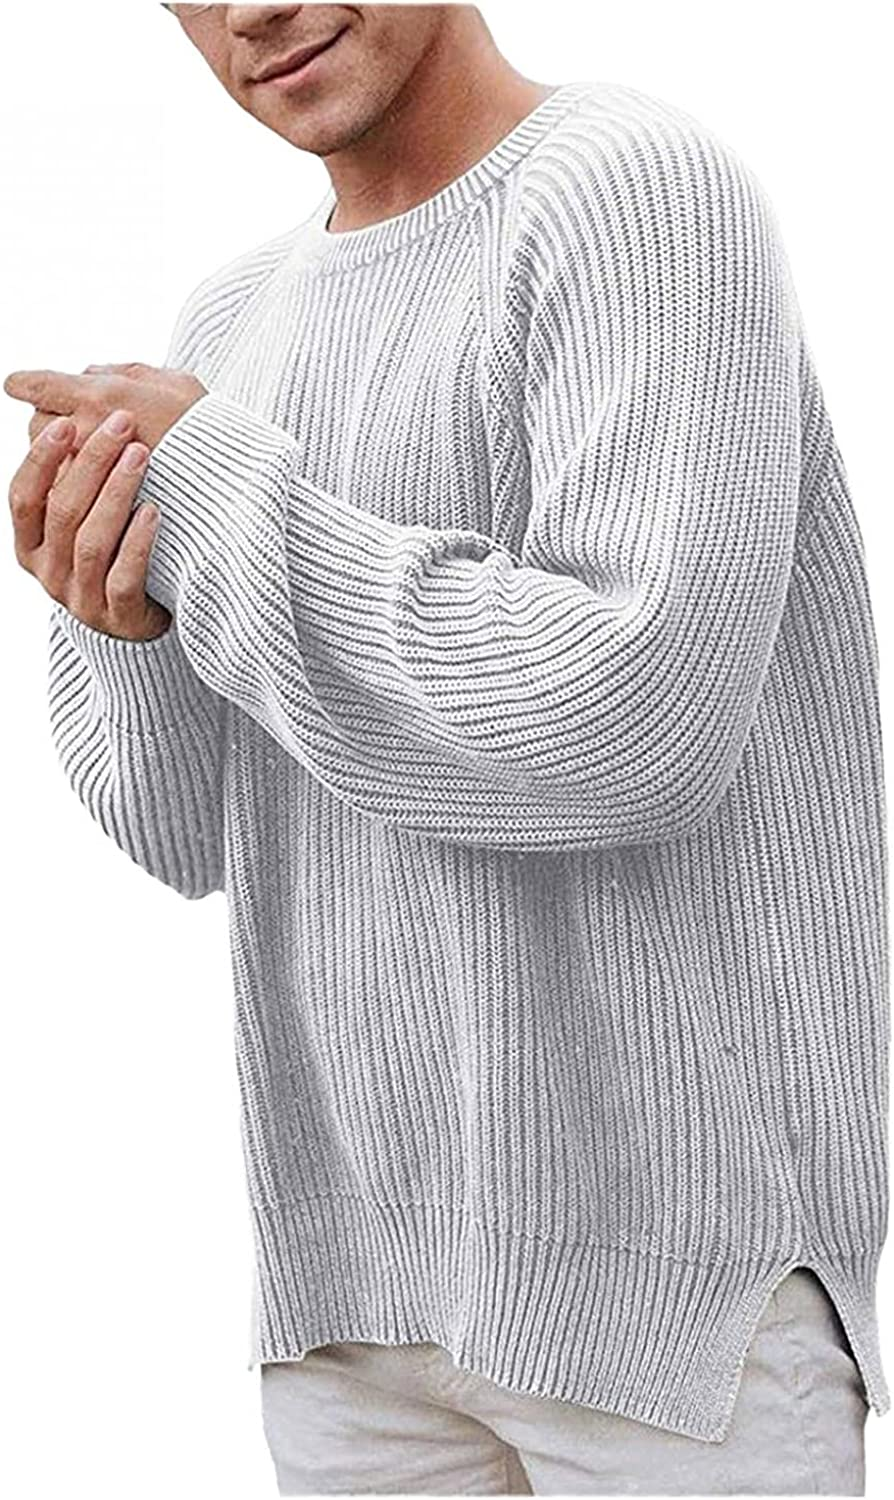 Burband Mens Casual Knit Pullover Sweaters Cozy Crewneck Rib Stitch Cable Knitwear Jumpers Lightweight Fisherman Sweaters